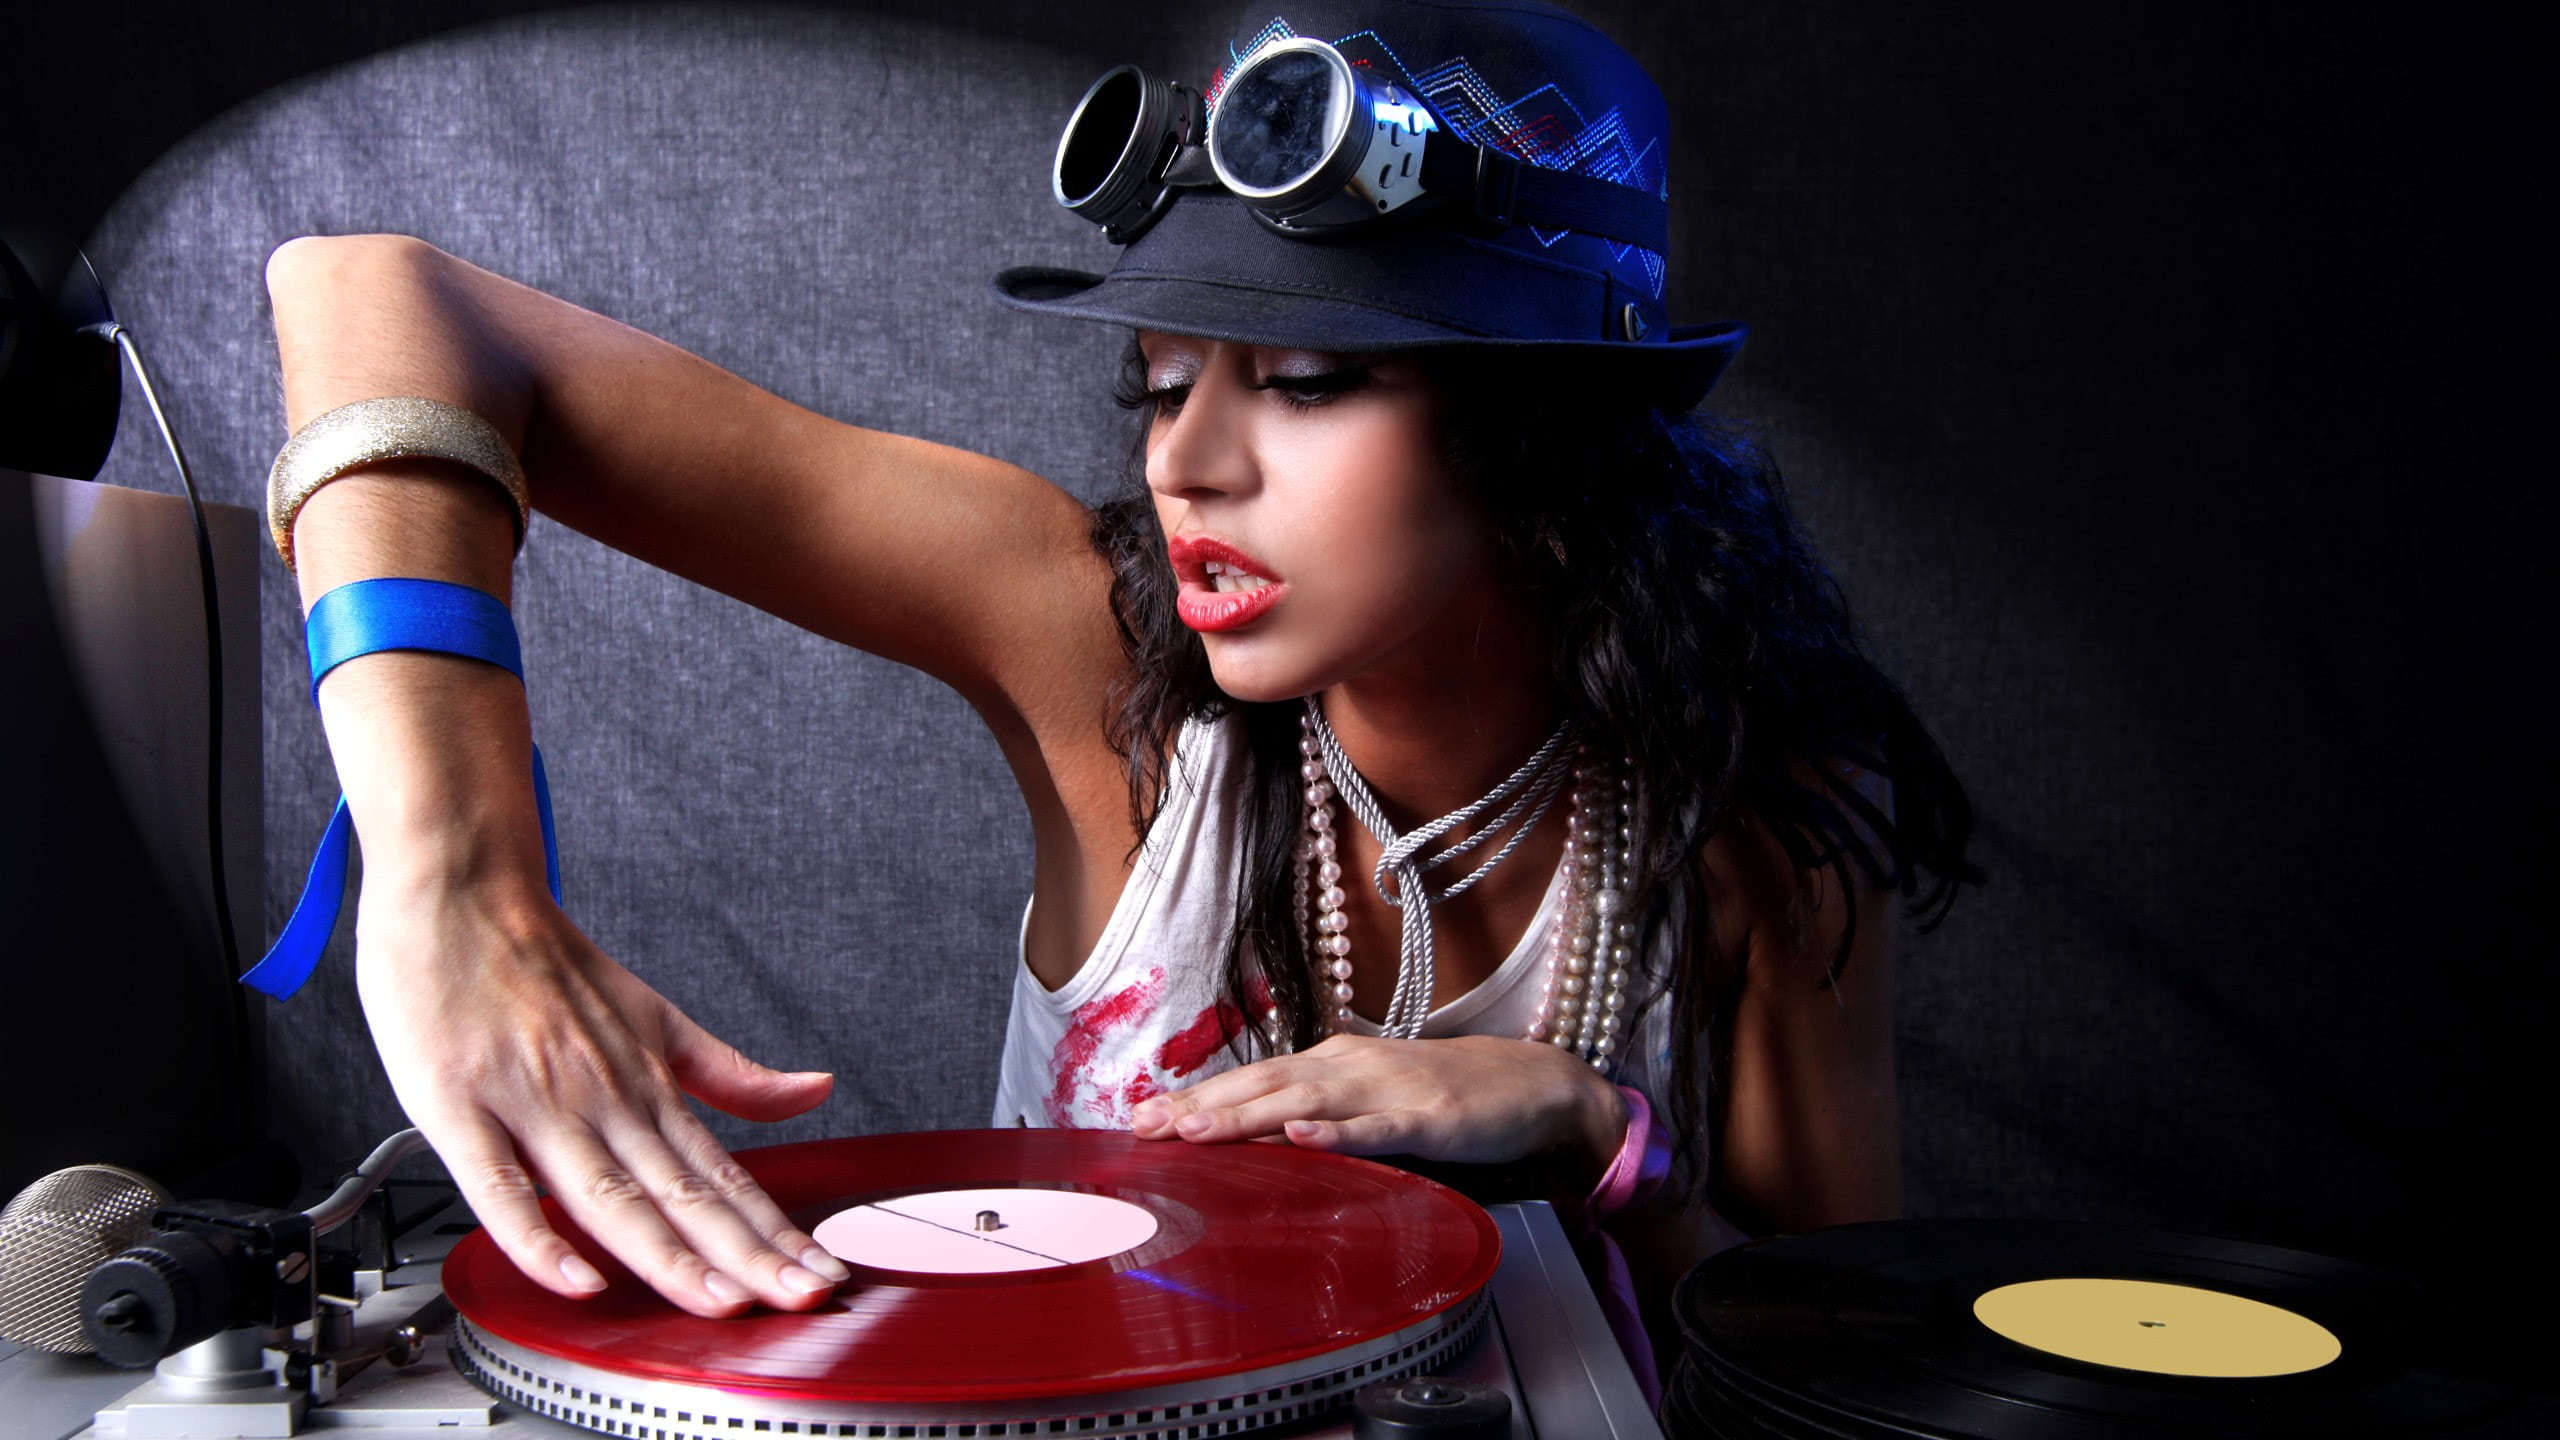 female dj wqhd 1440p wallpaper